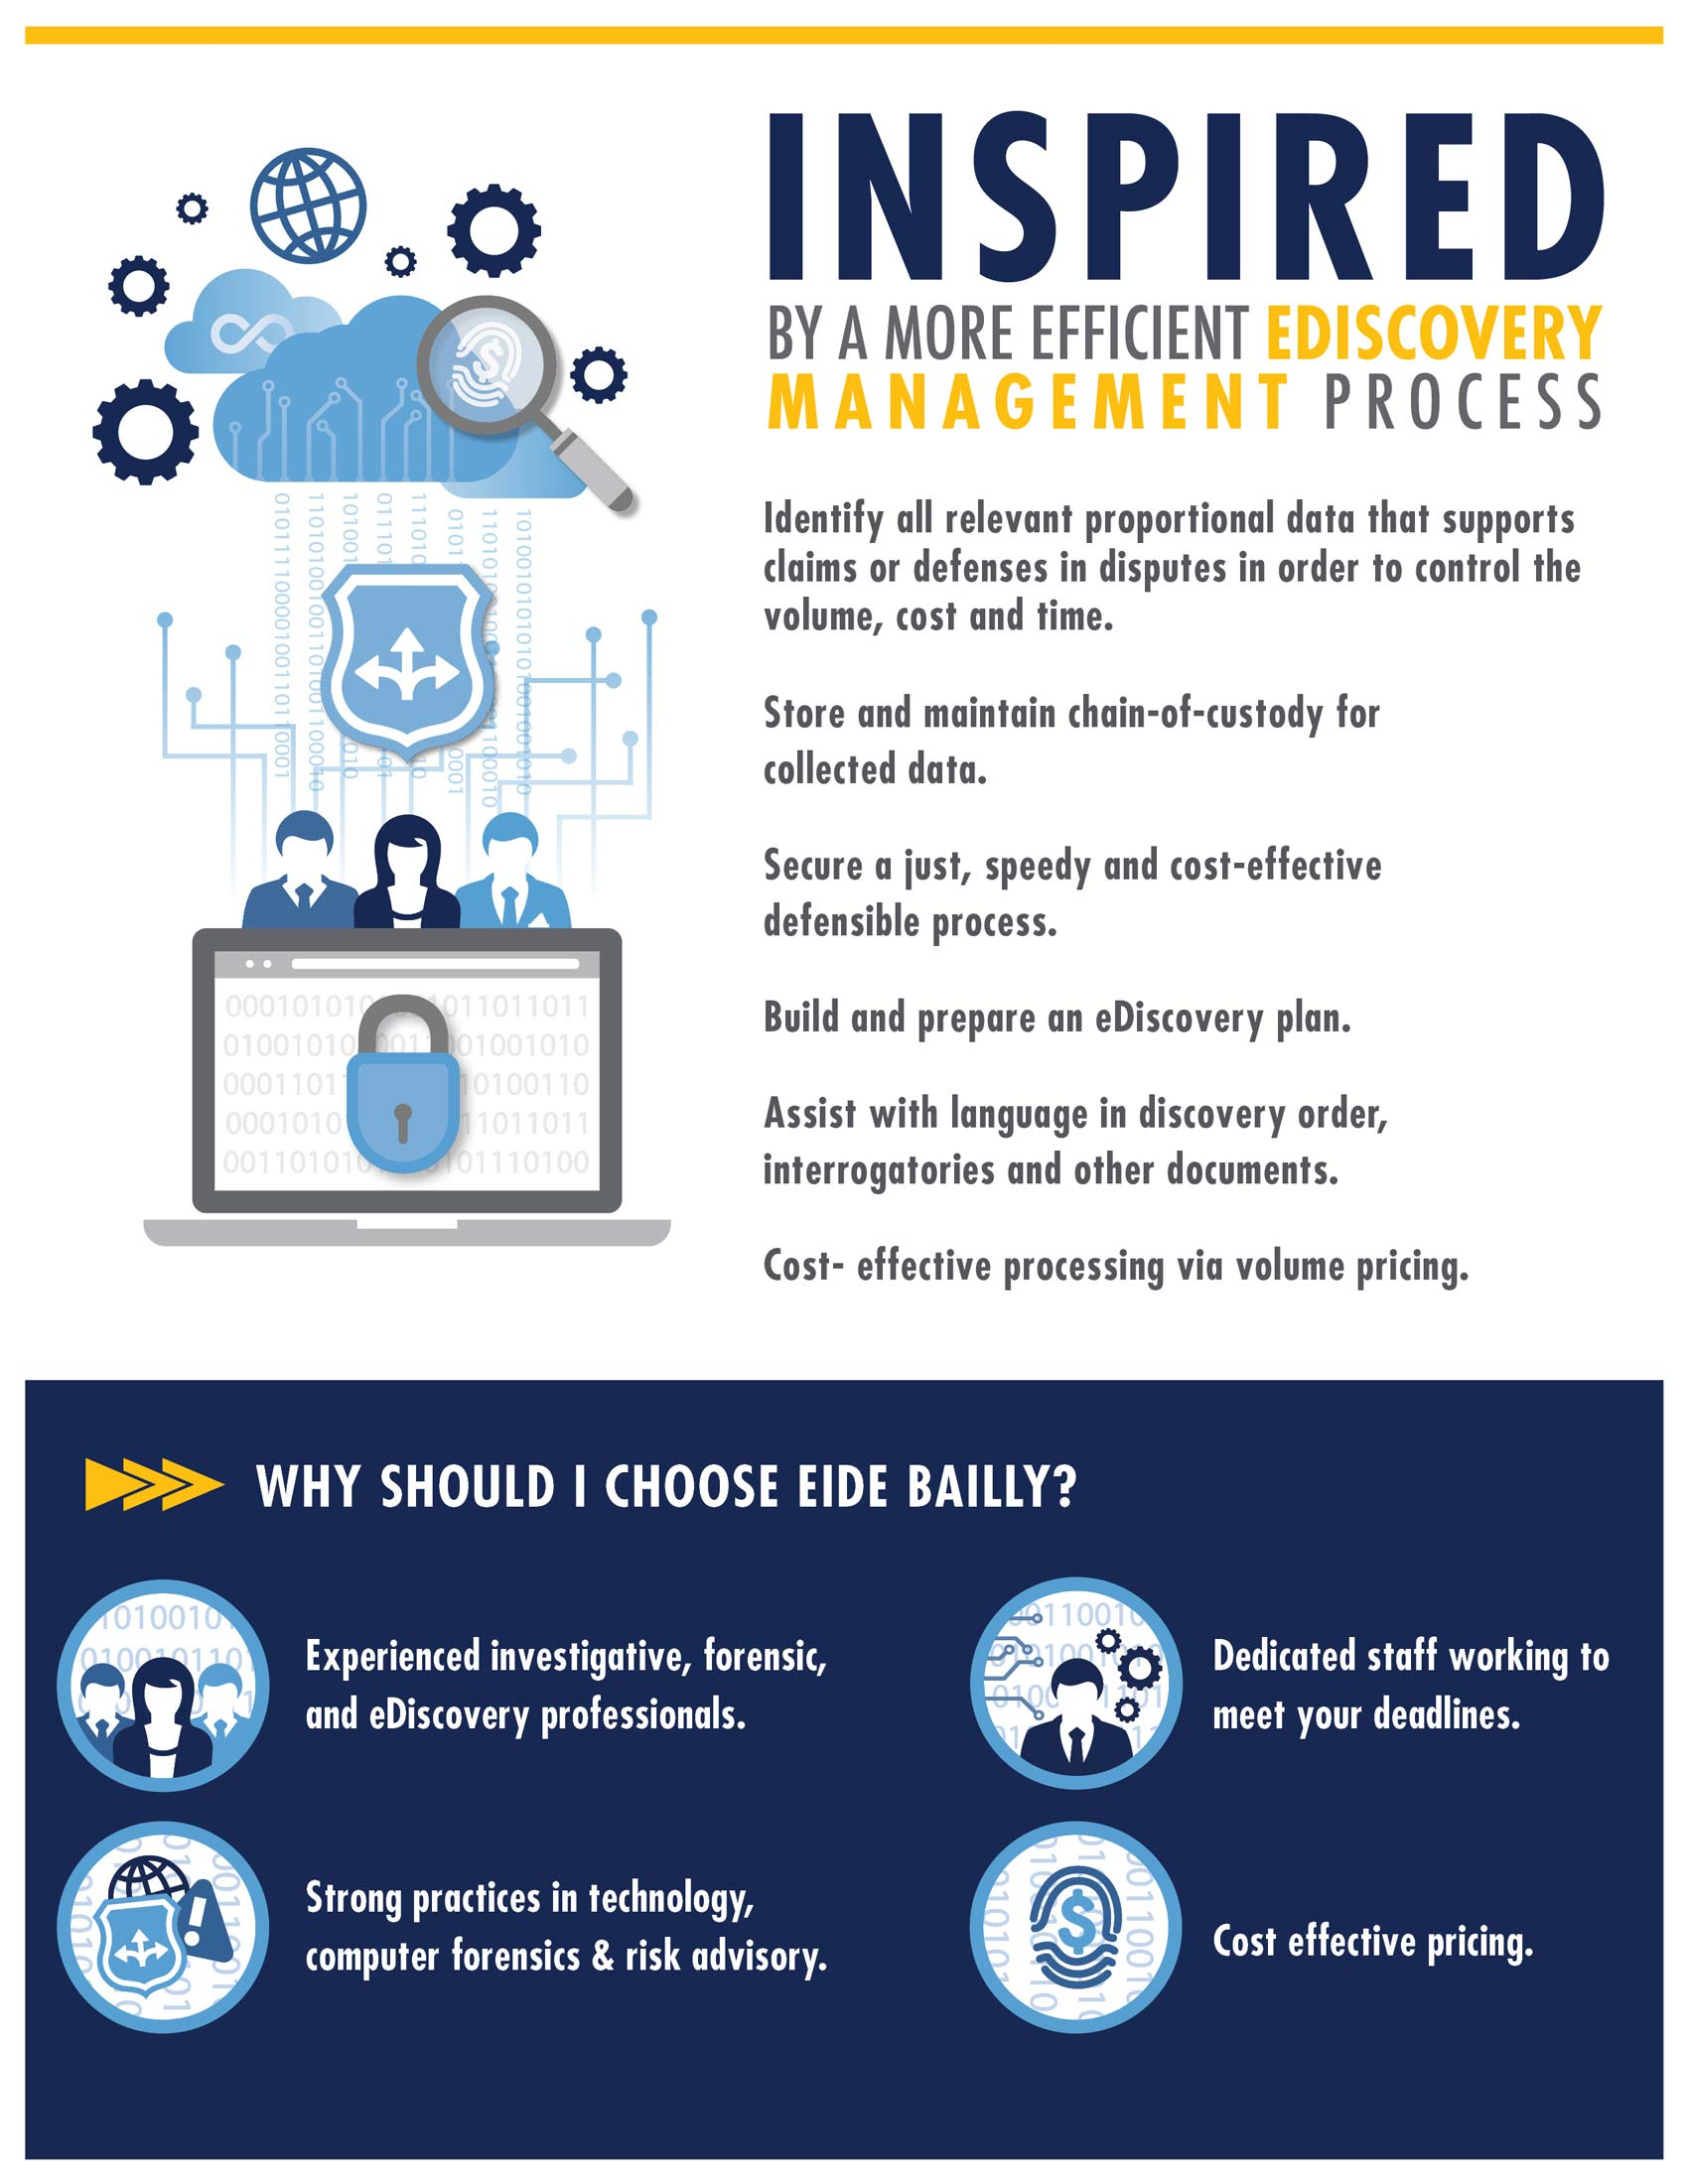 eDiscovery Management Process